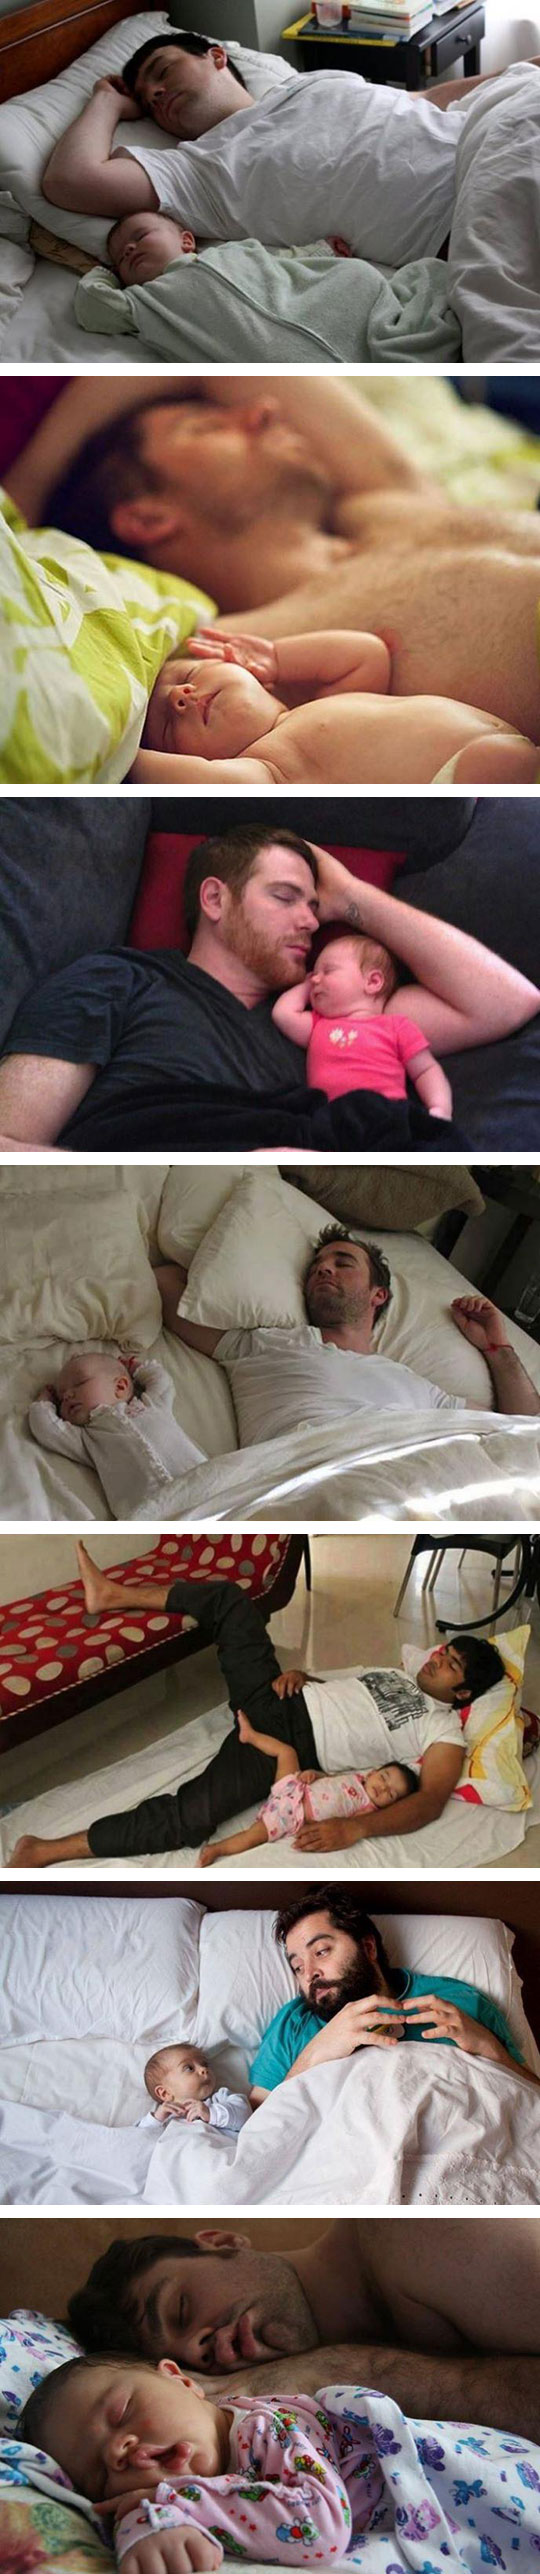 No Need For DNA Tests Here